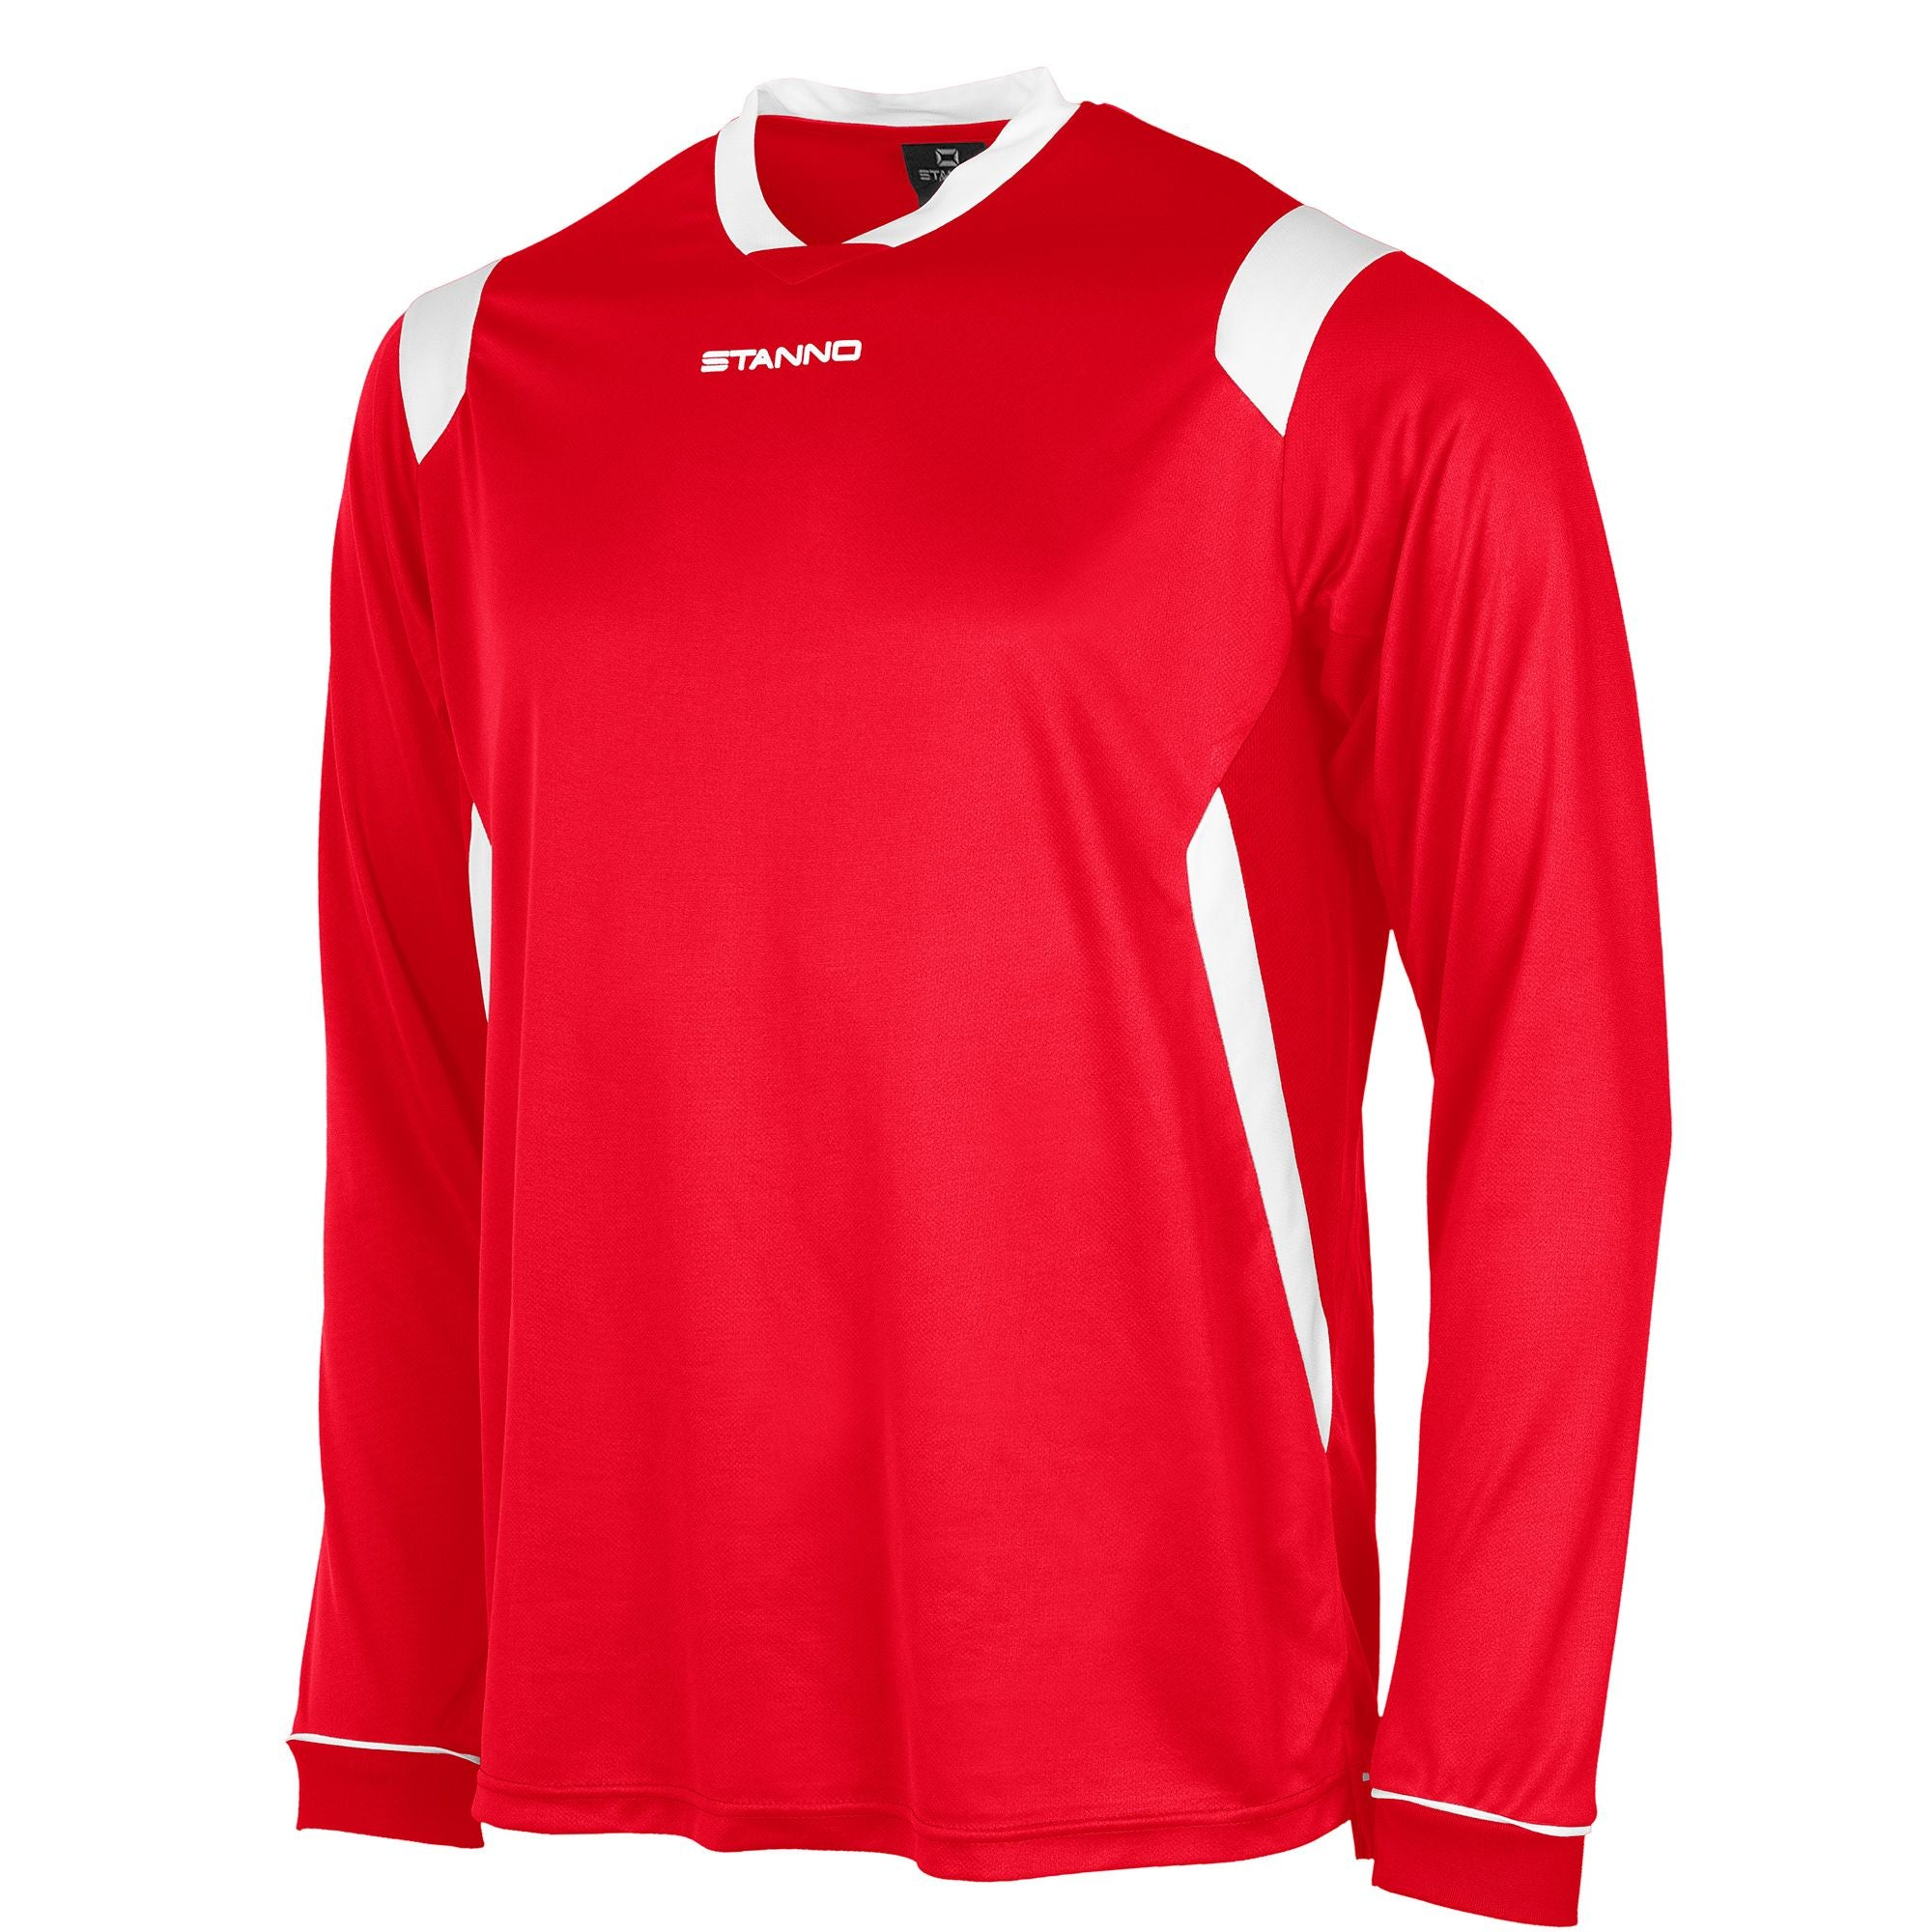 Stanno Arezzo long sleeved shirt in red with white contrast collar, and stripe detail on shoulders and sides.